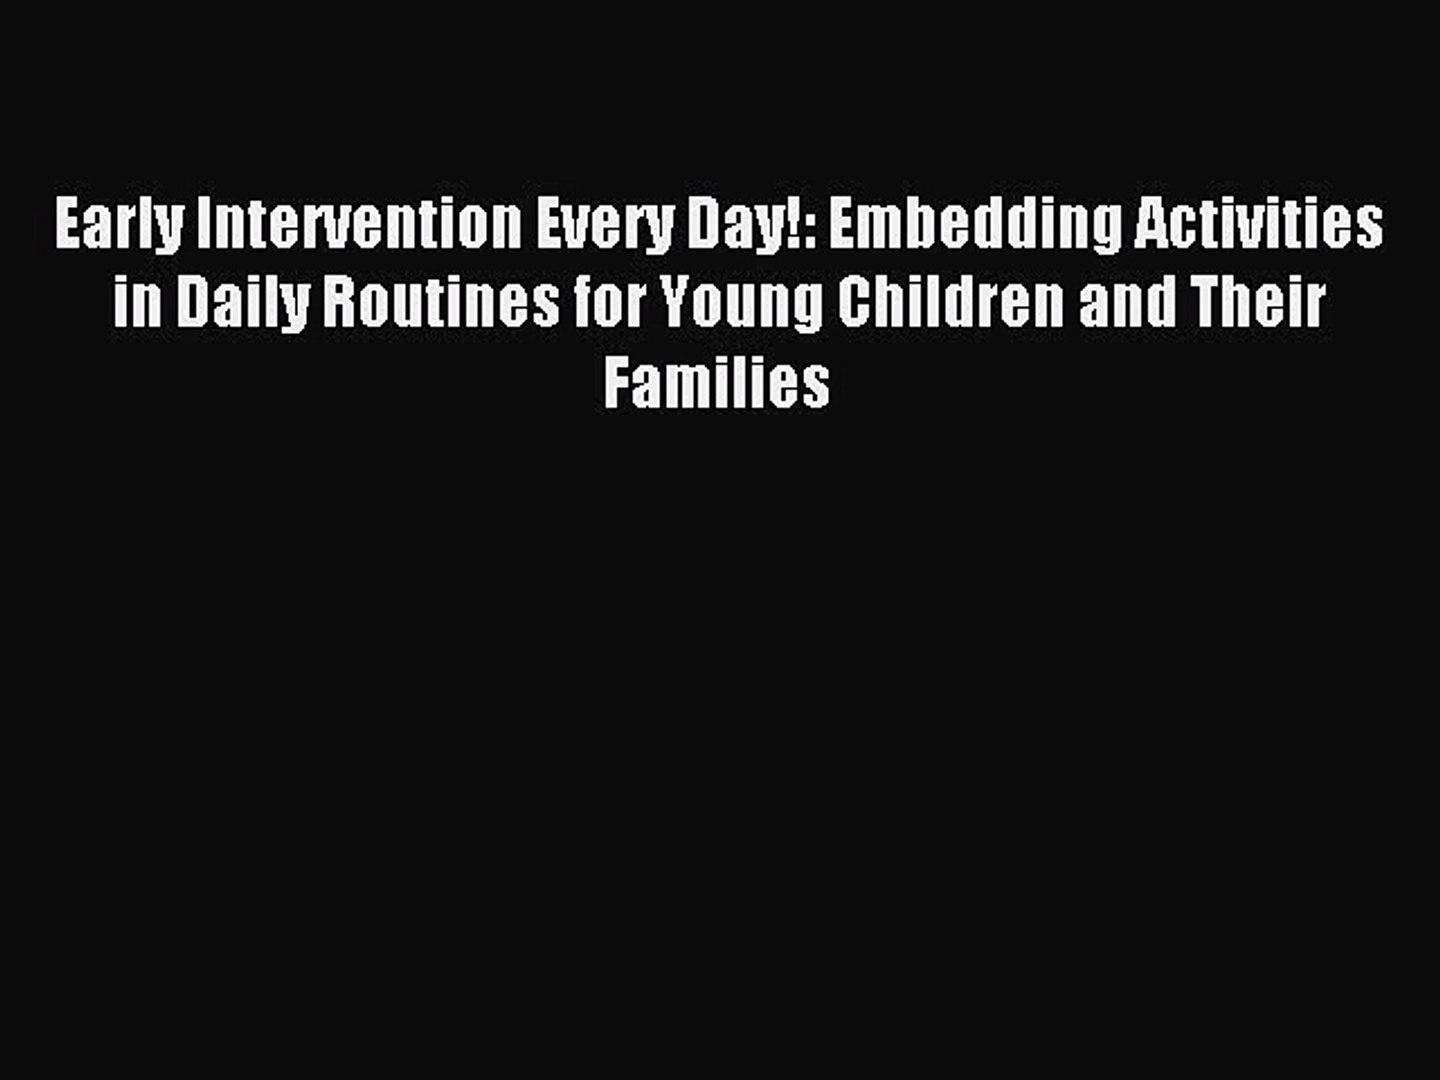 Read Early Intervention Every Day!: Embedding Activities in Daily Routines for Young Children